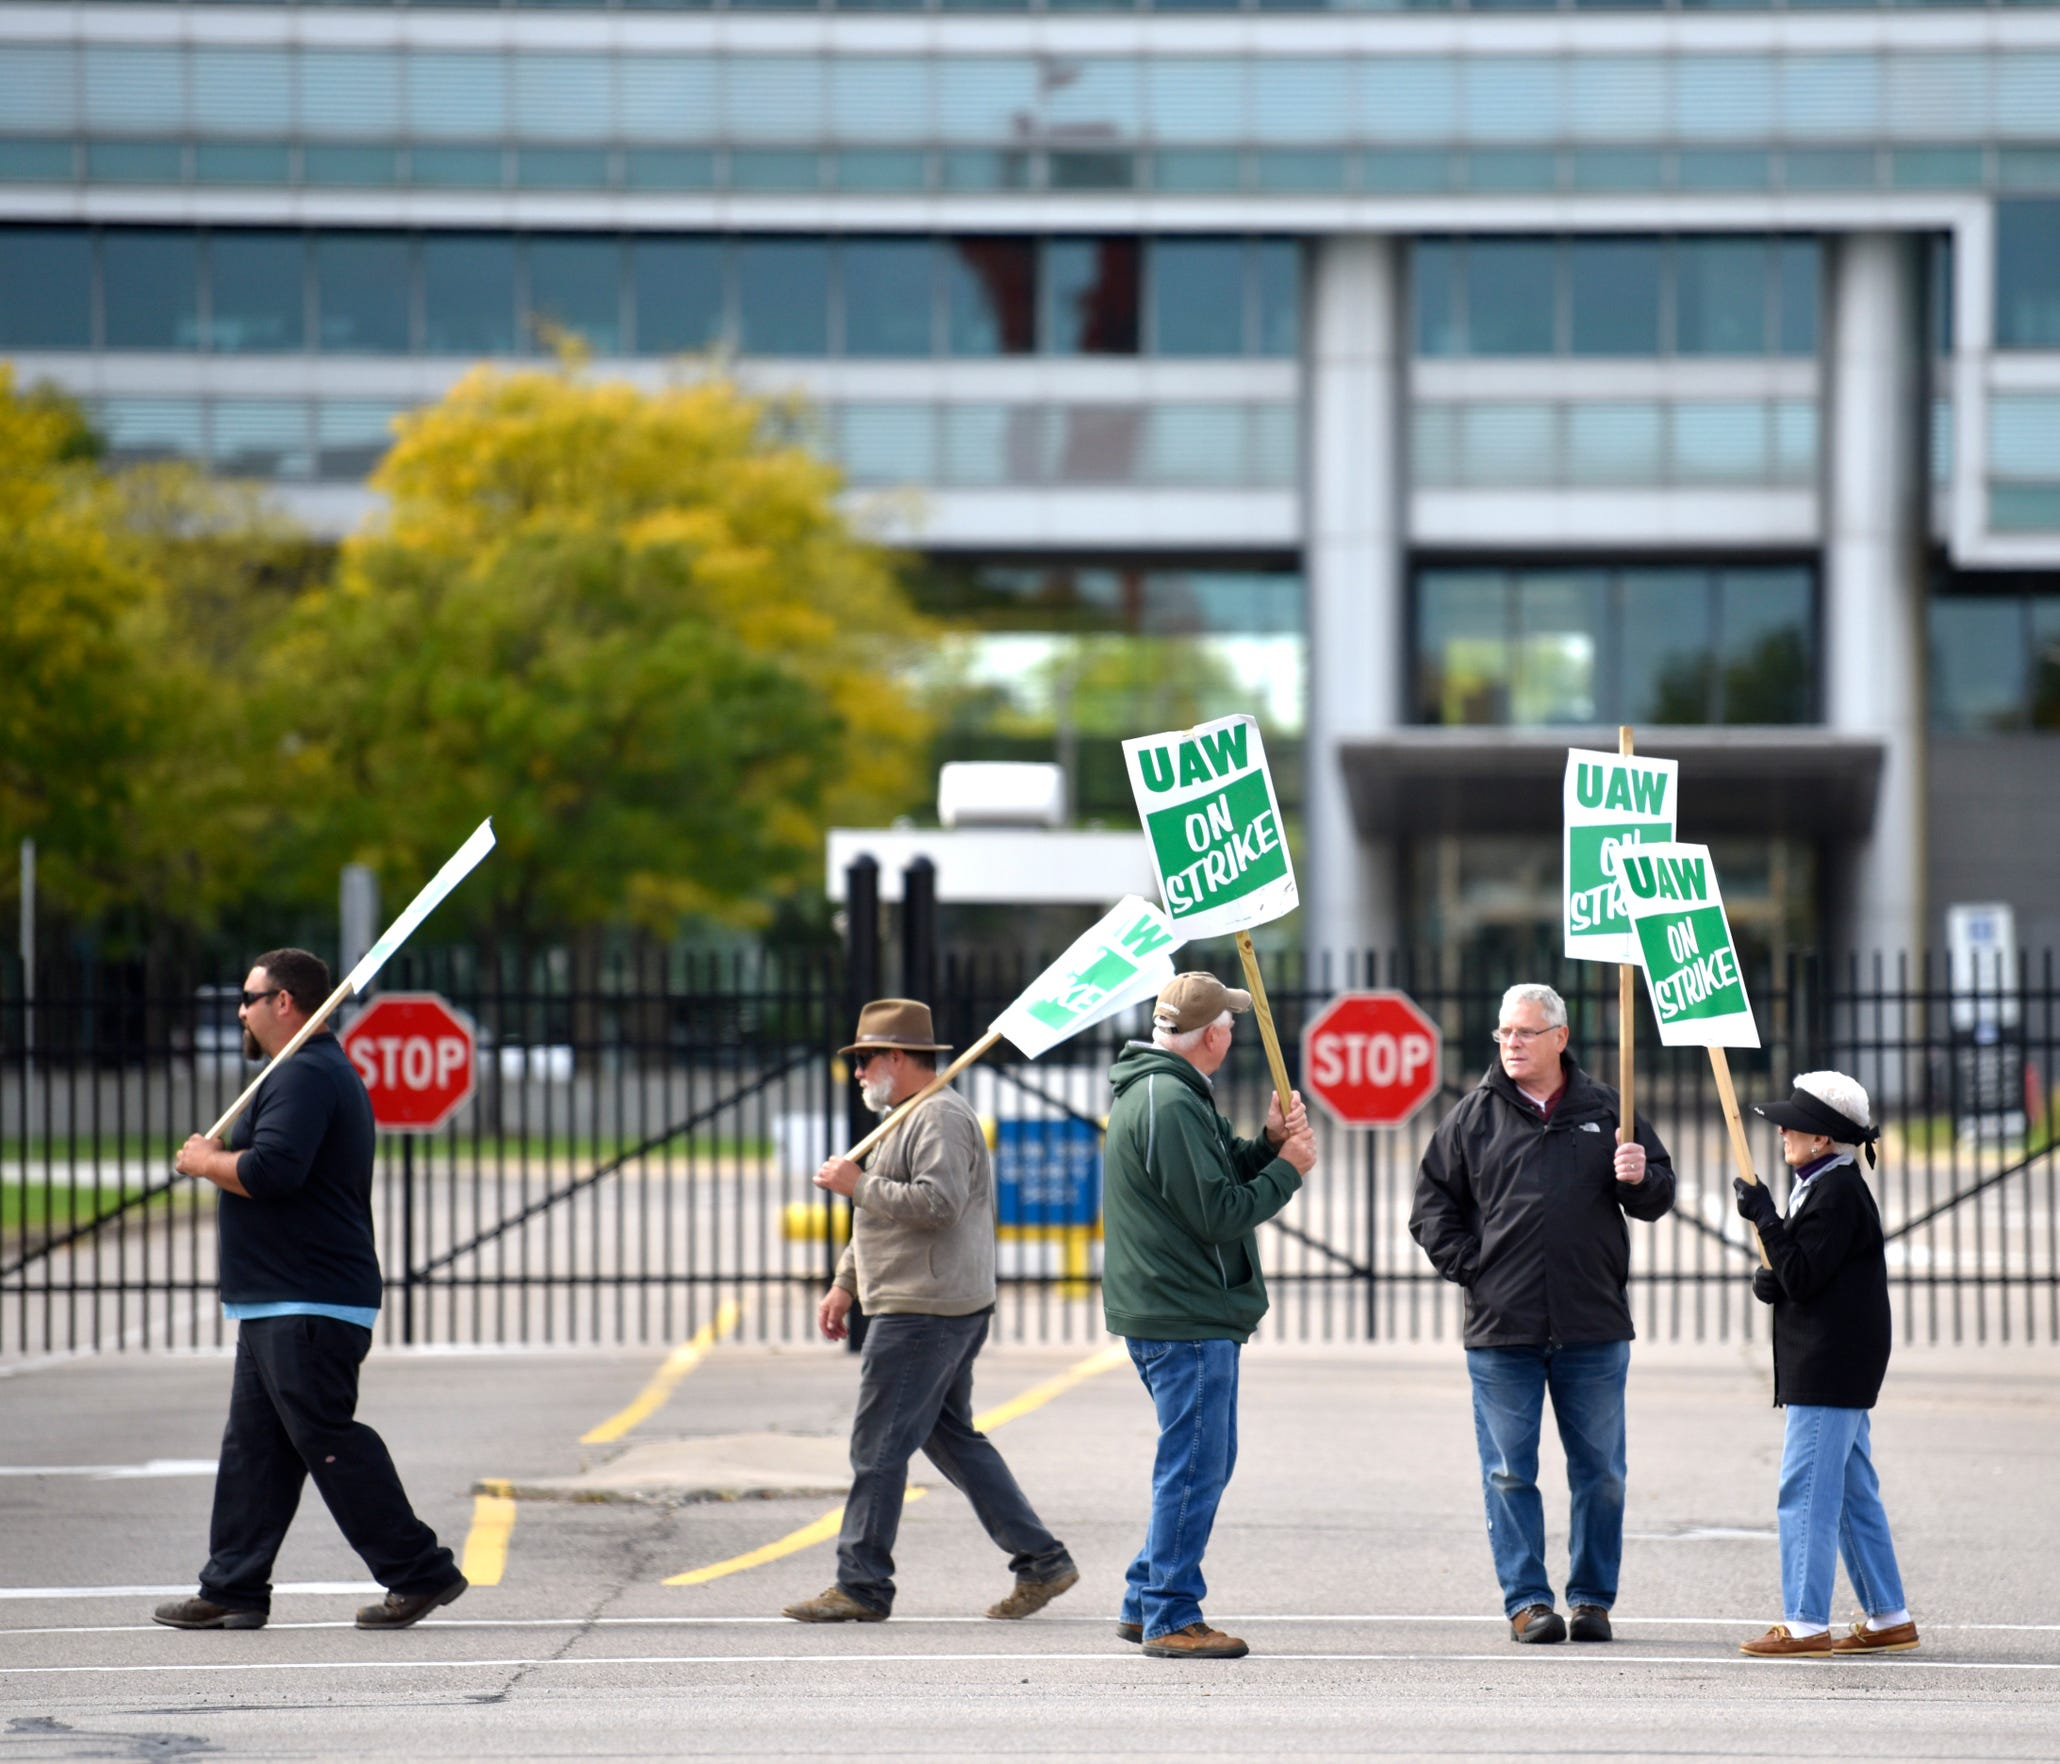 UAW GM and Aramark Local 160 active members picket in front of Gate 11 at the GM Tech Center in Warren, Saturday, October 5, 2019. The 40-day strike was the longest against General Motors in nearly 50 years.